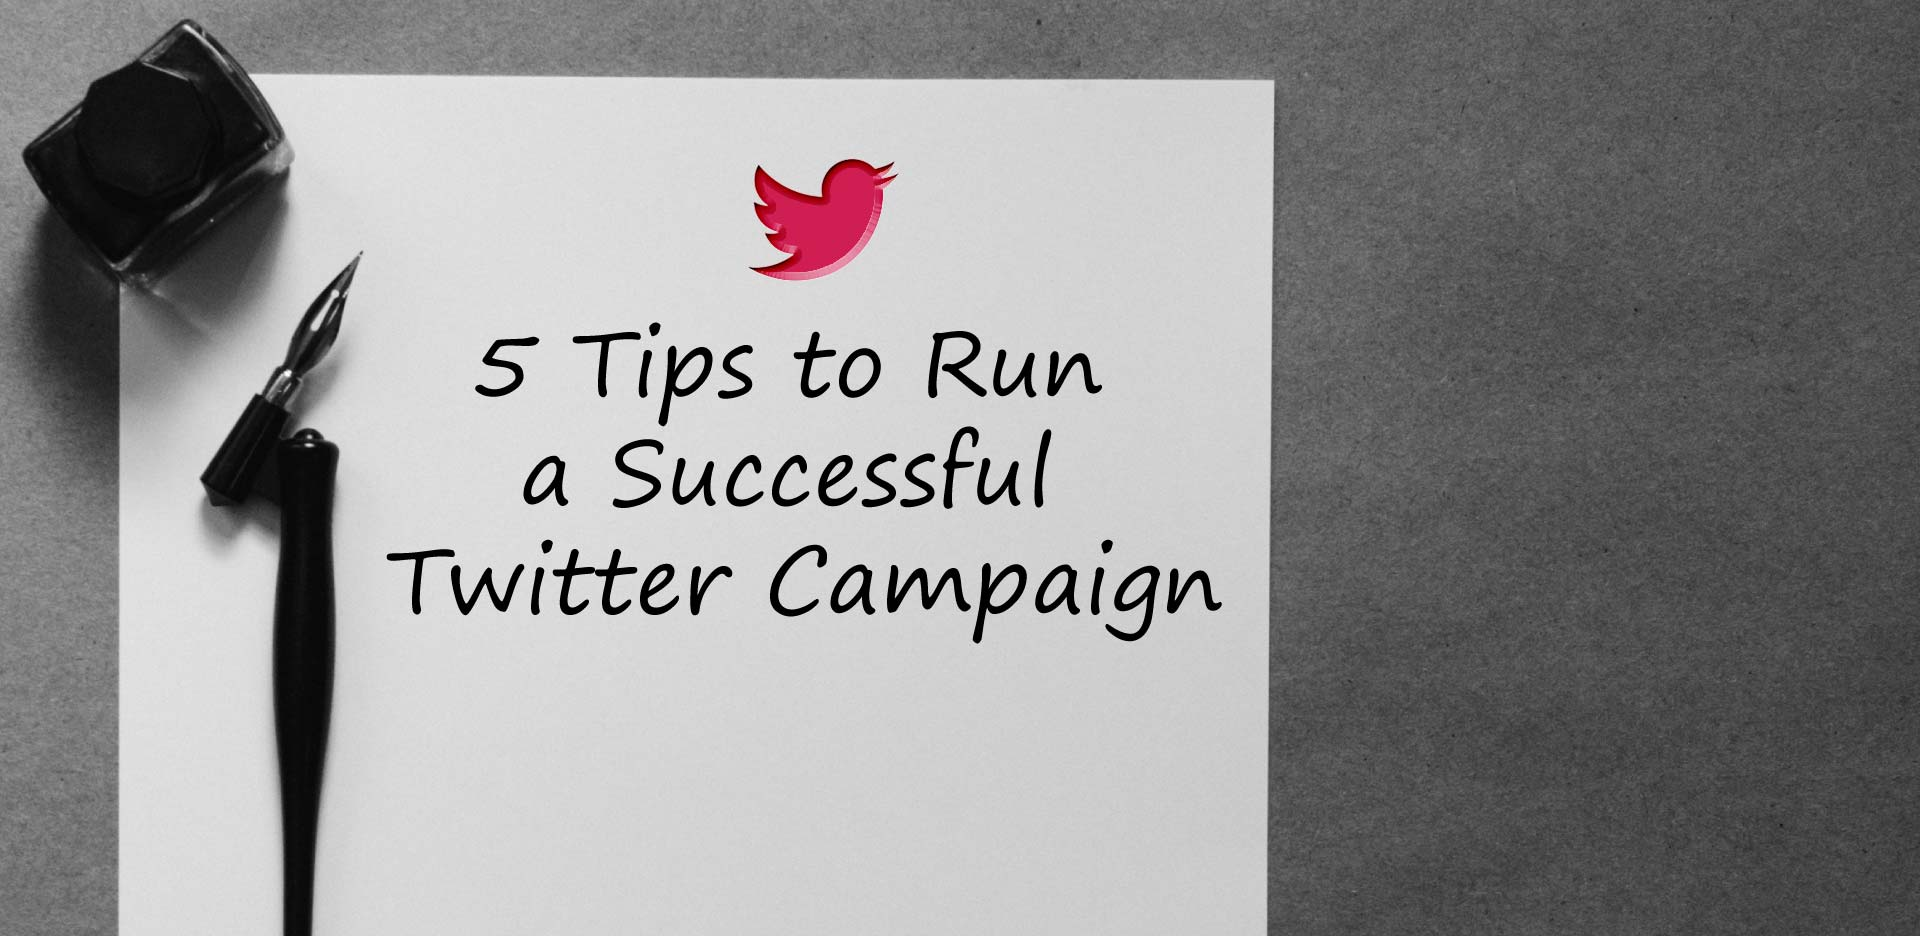 5 Tips to Run a Successful Twitter Campaign ...